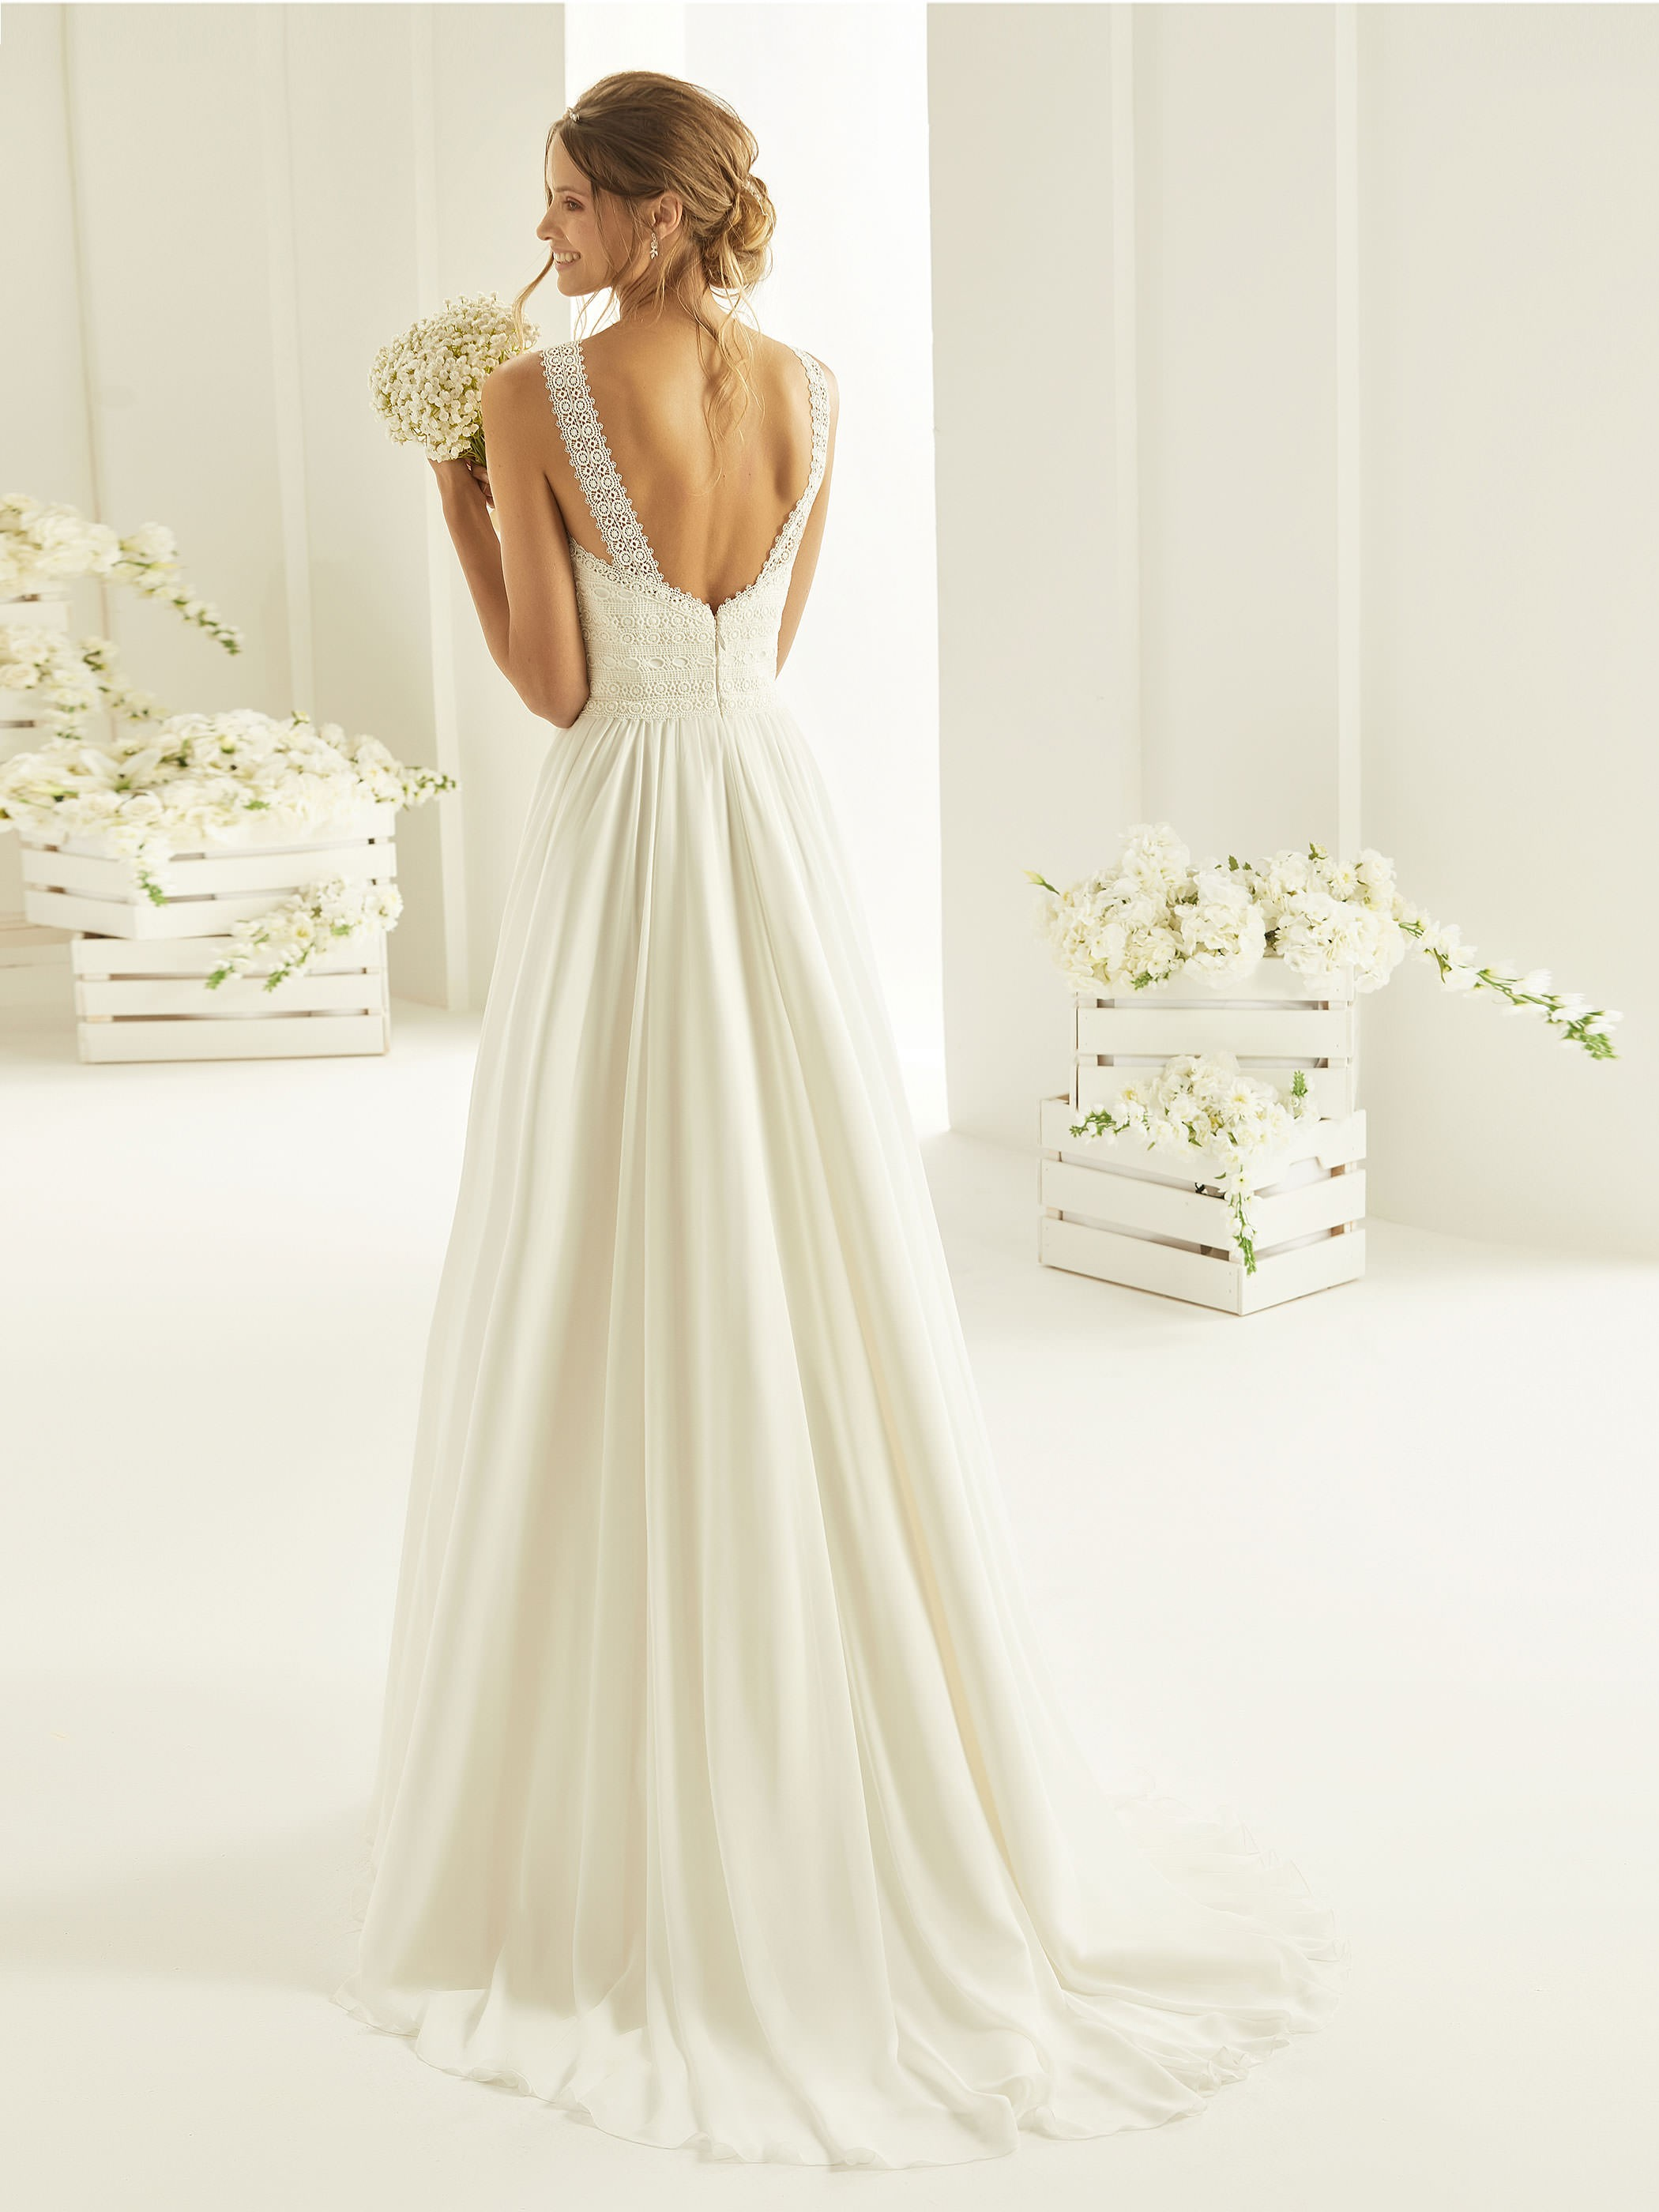 bianco-evento-bridal-dress-ophelia-_3_.j